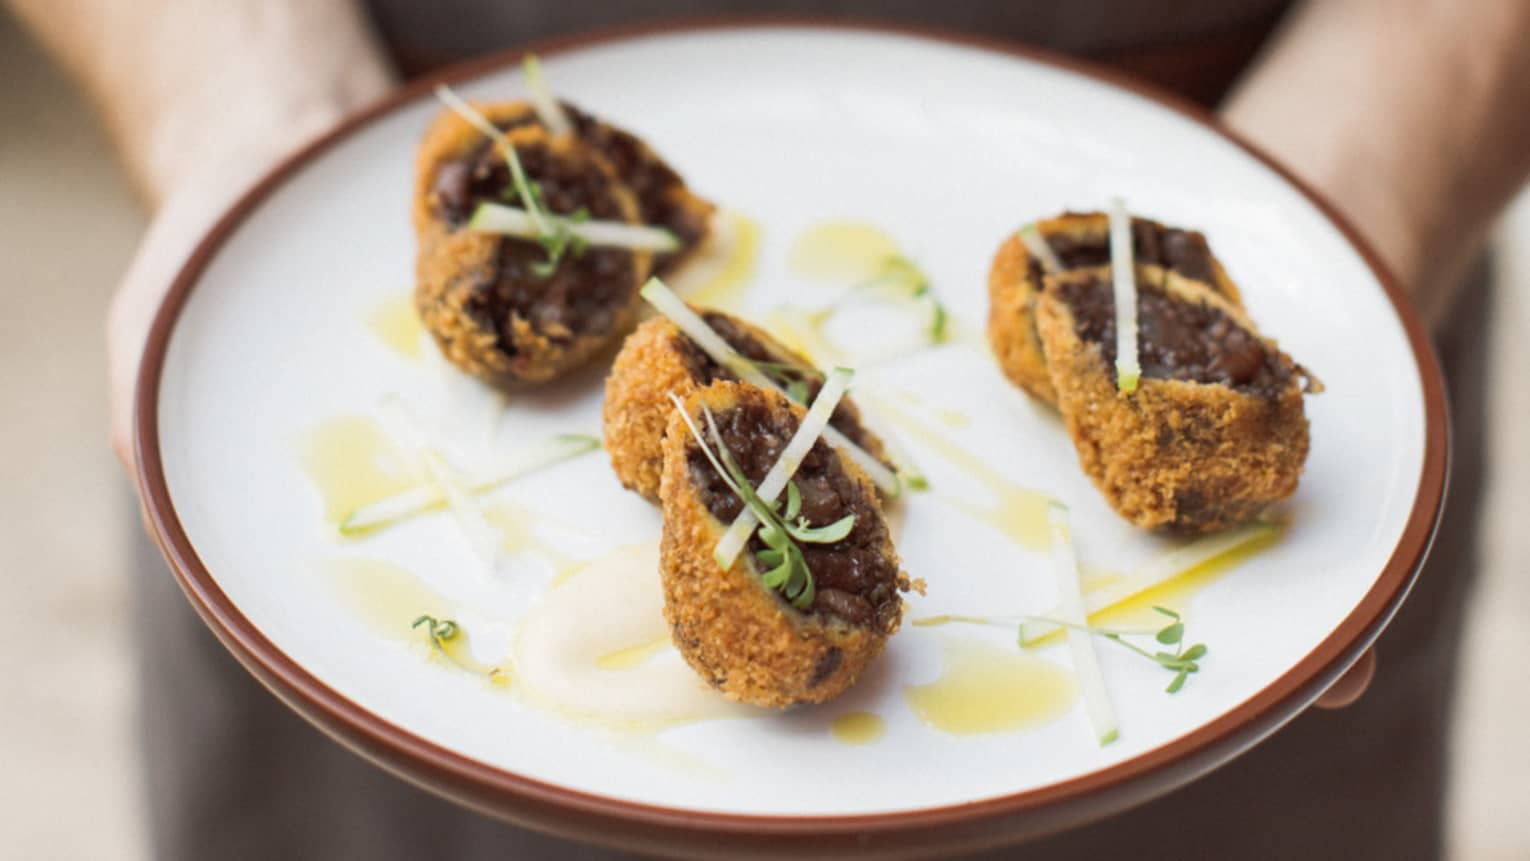 Blood sausage croquets are served with green apple